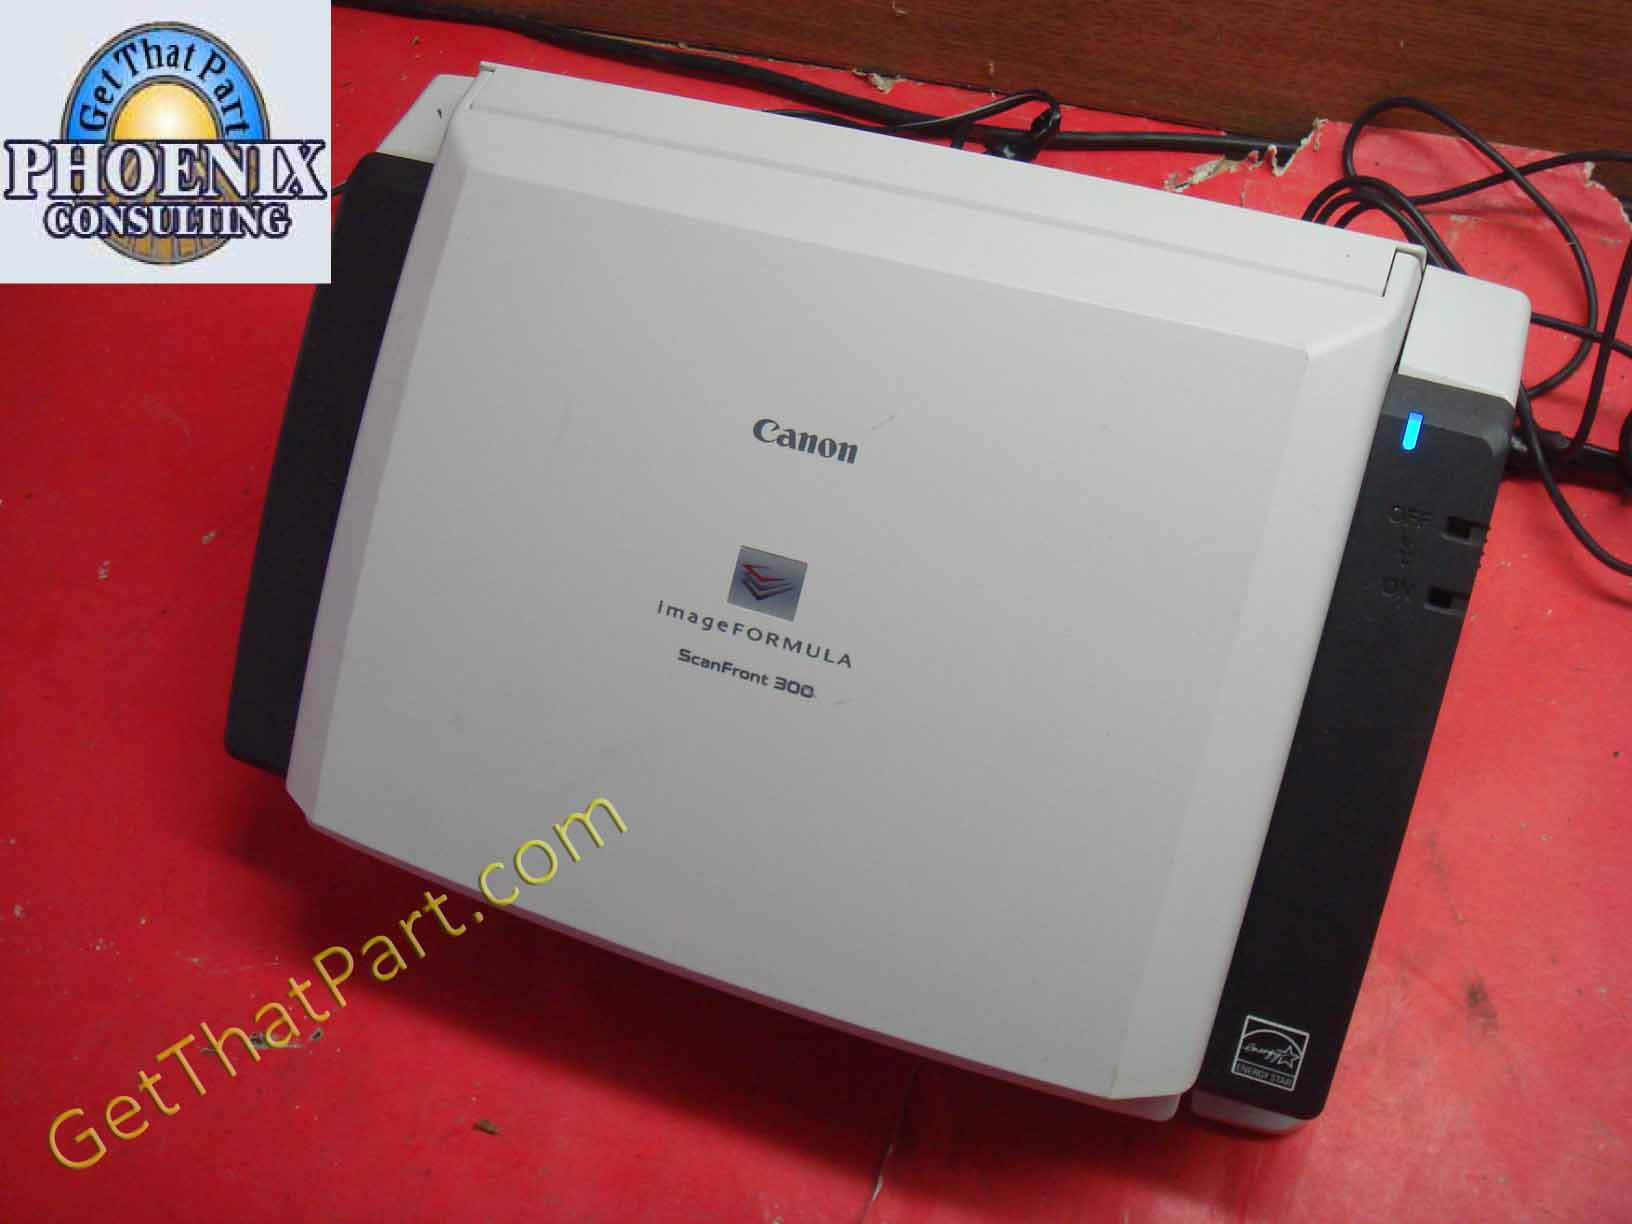 Canon scanfront 300 инструкция